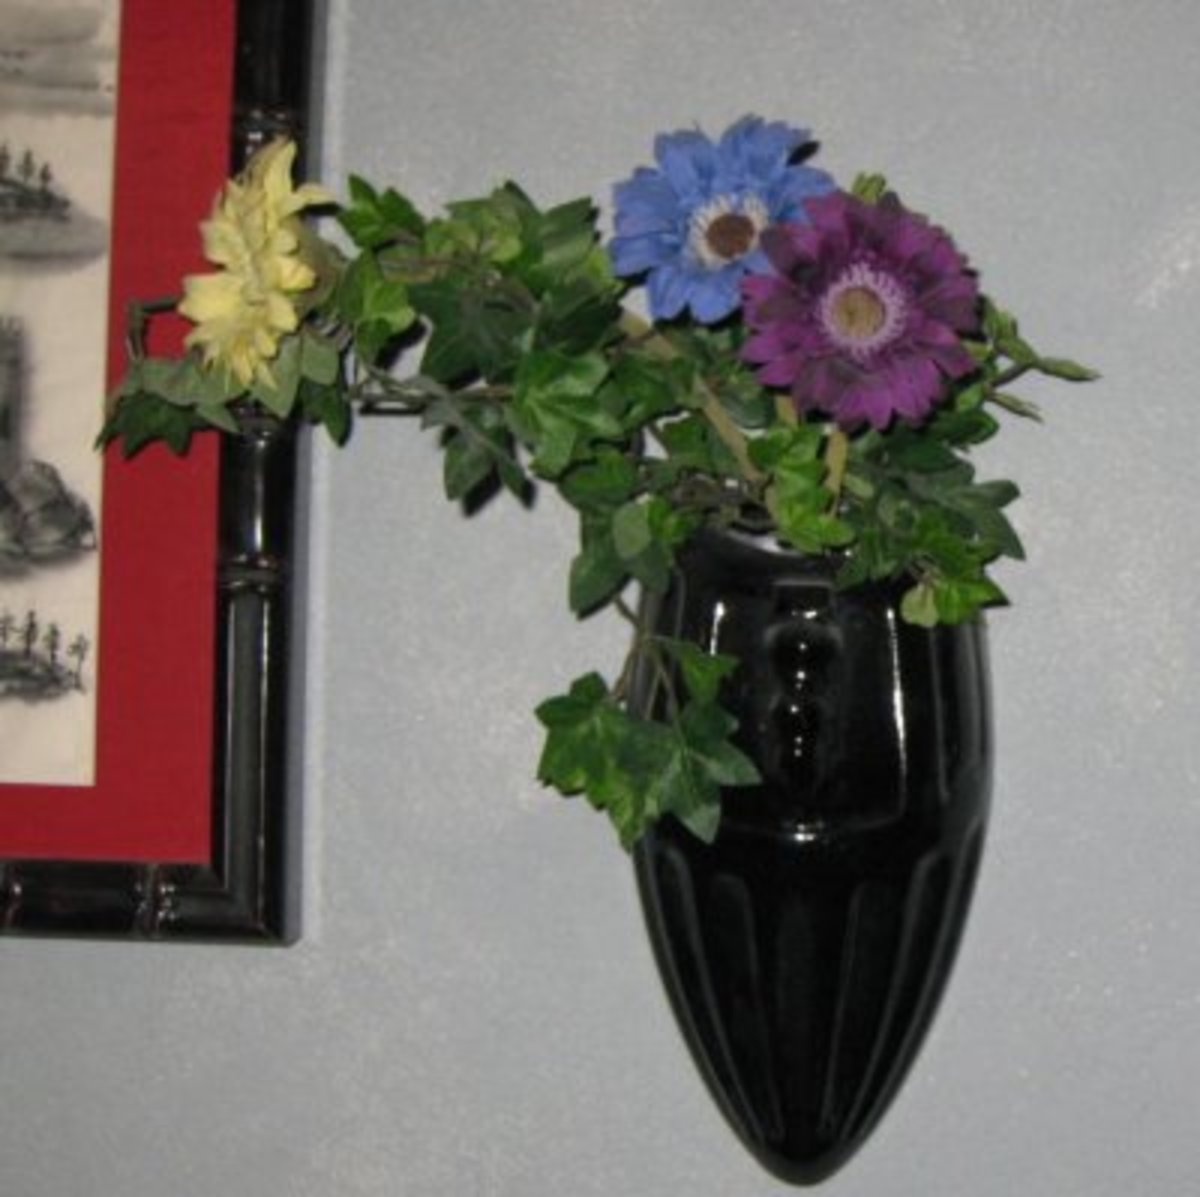 Wall Pocket with Flowers